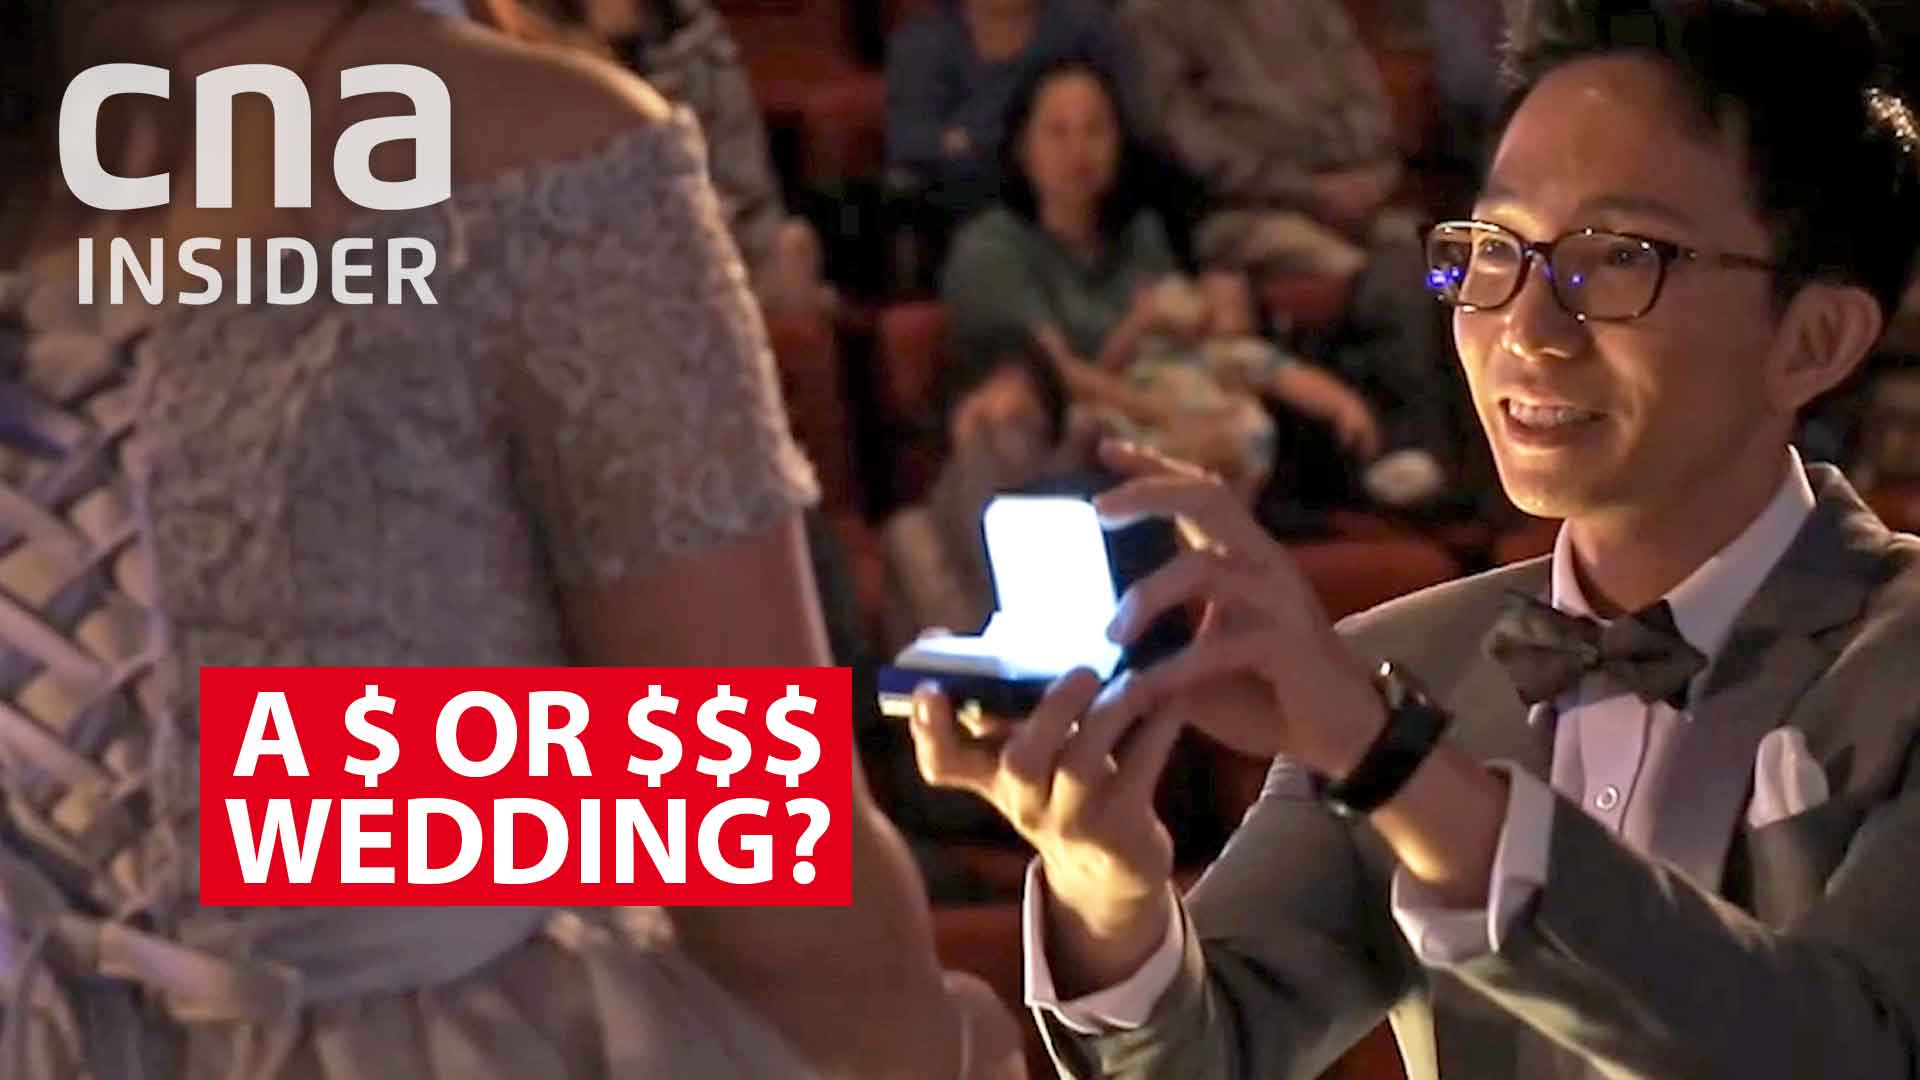 Lavish vs budget wedding: are you spending too much?